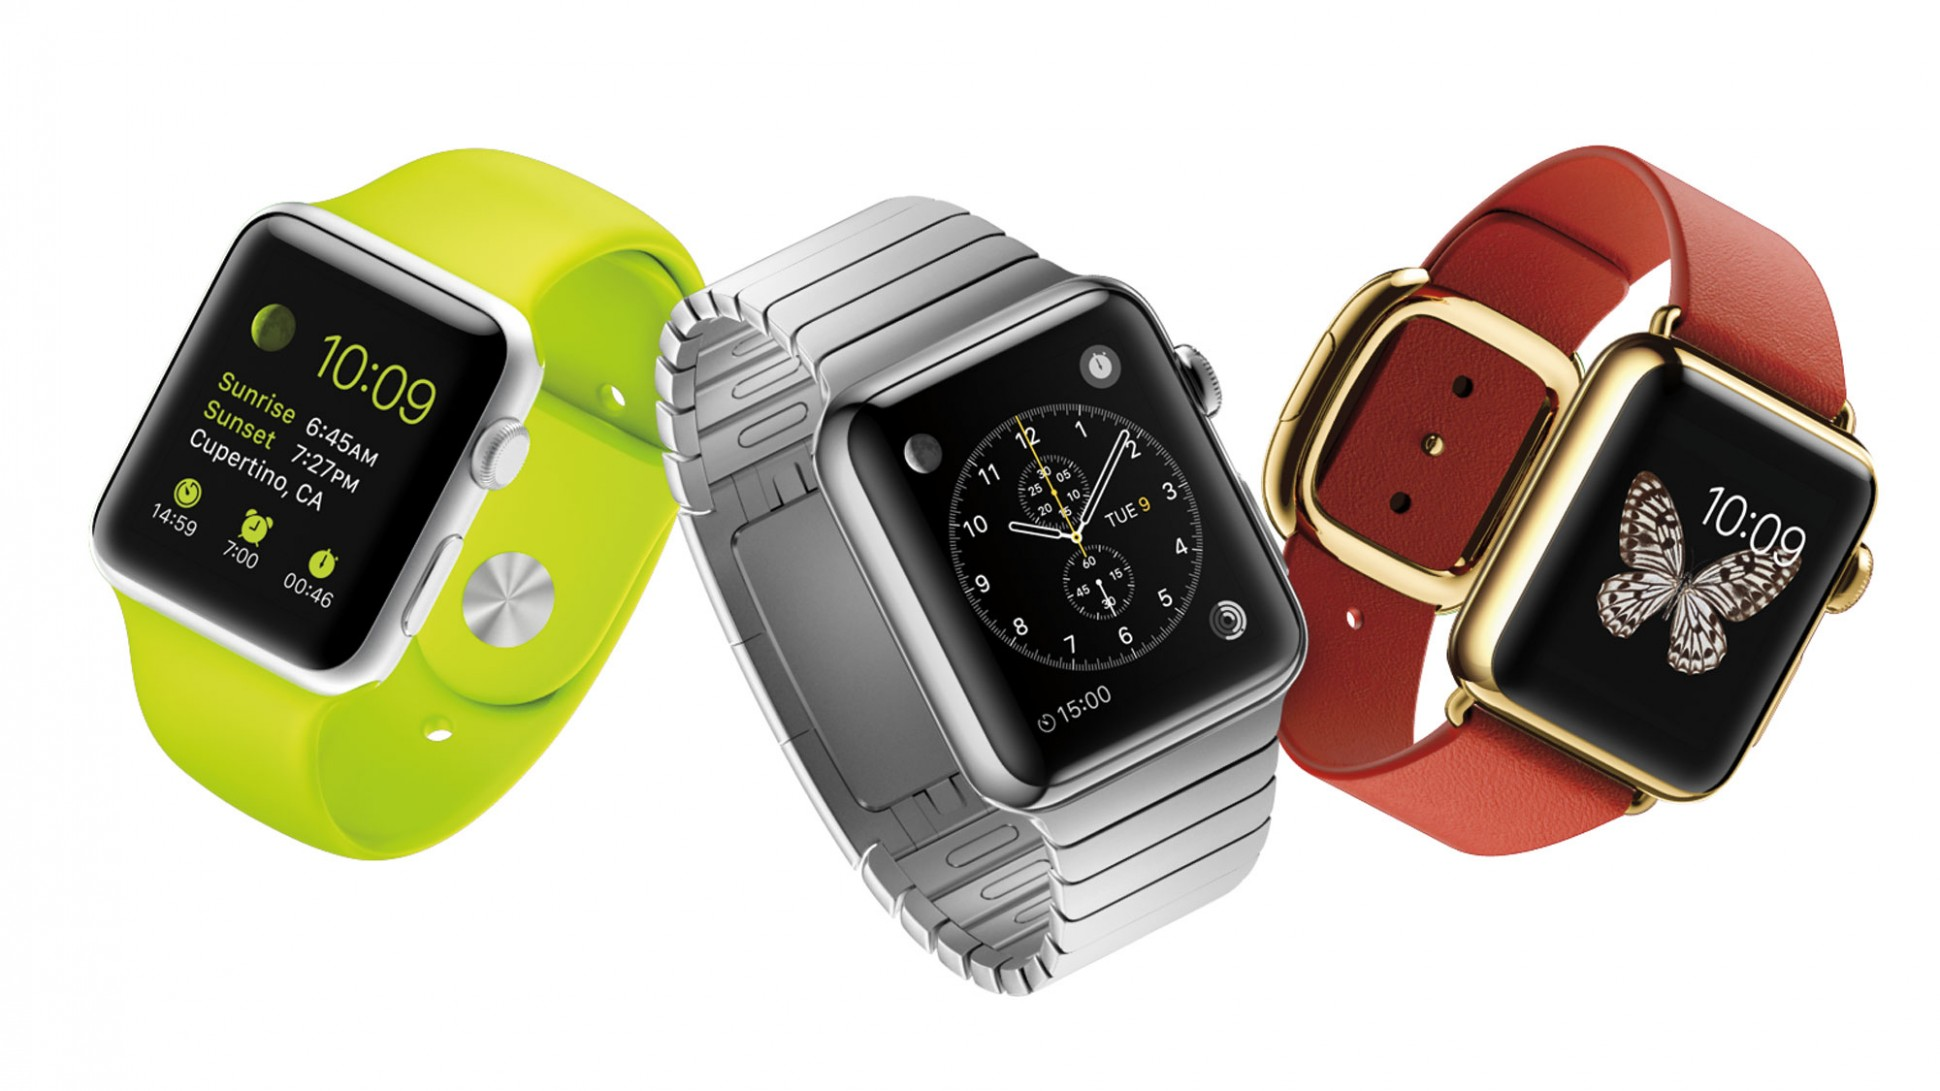 Where will you buy the Apple Watch?